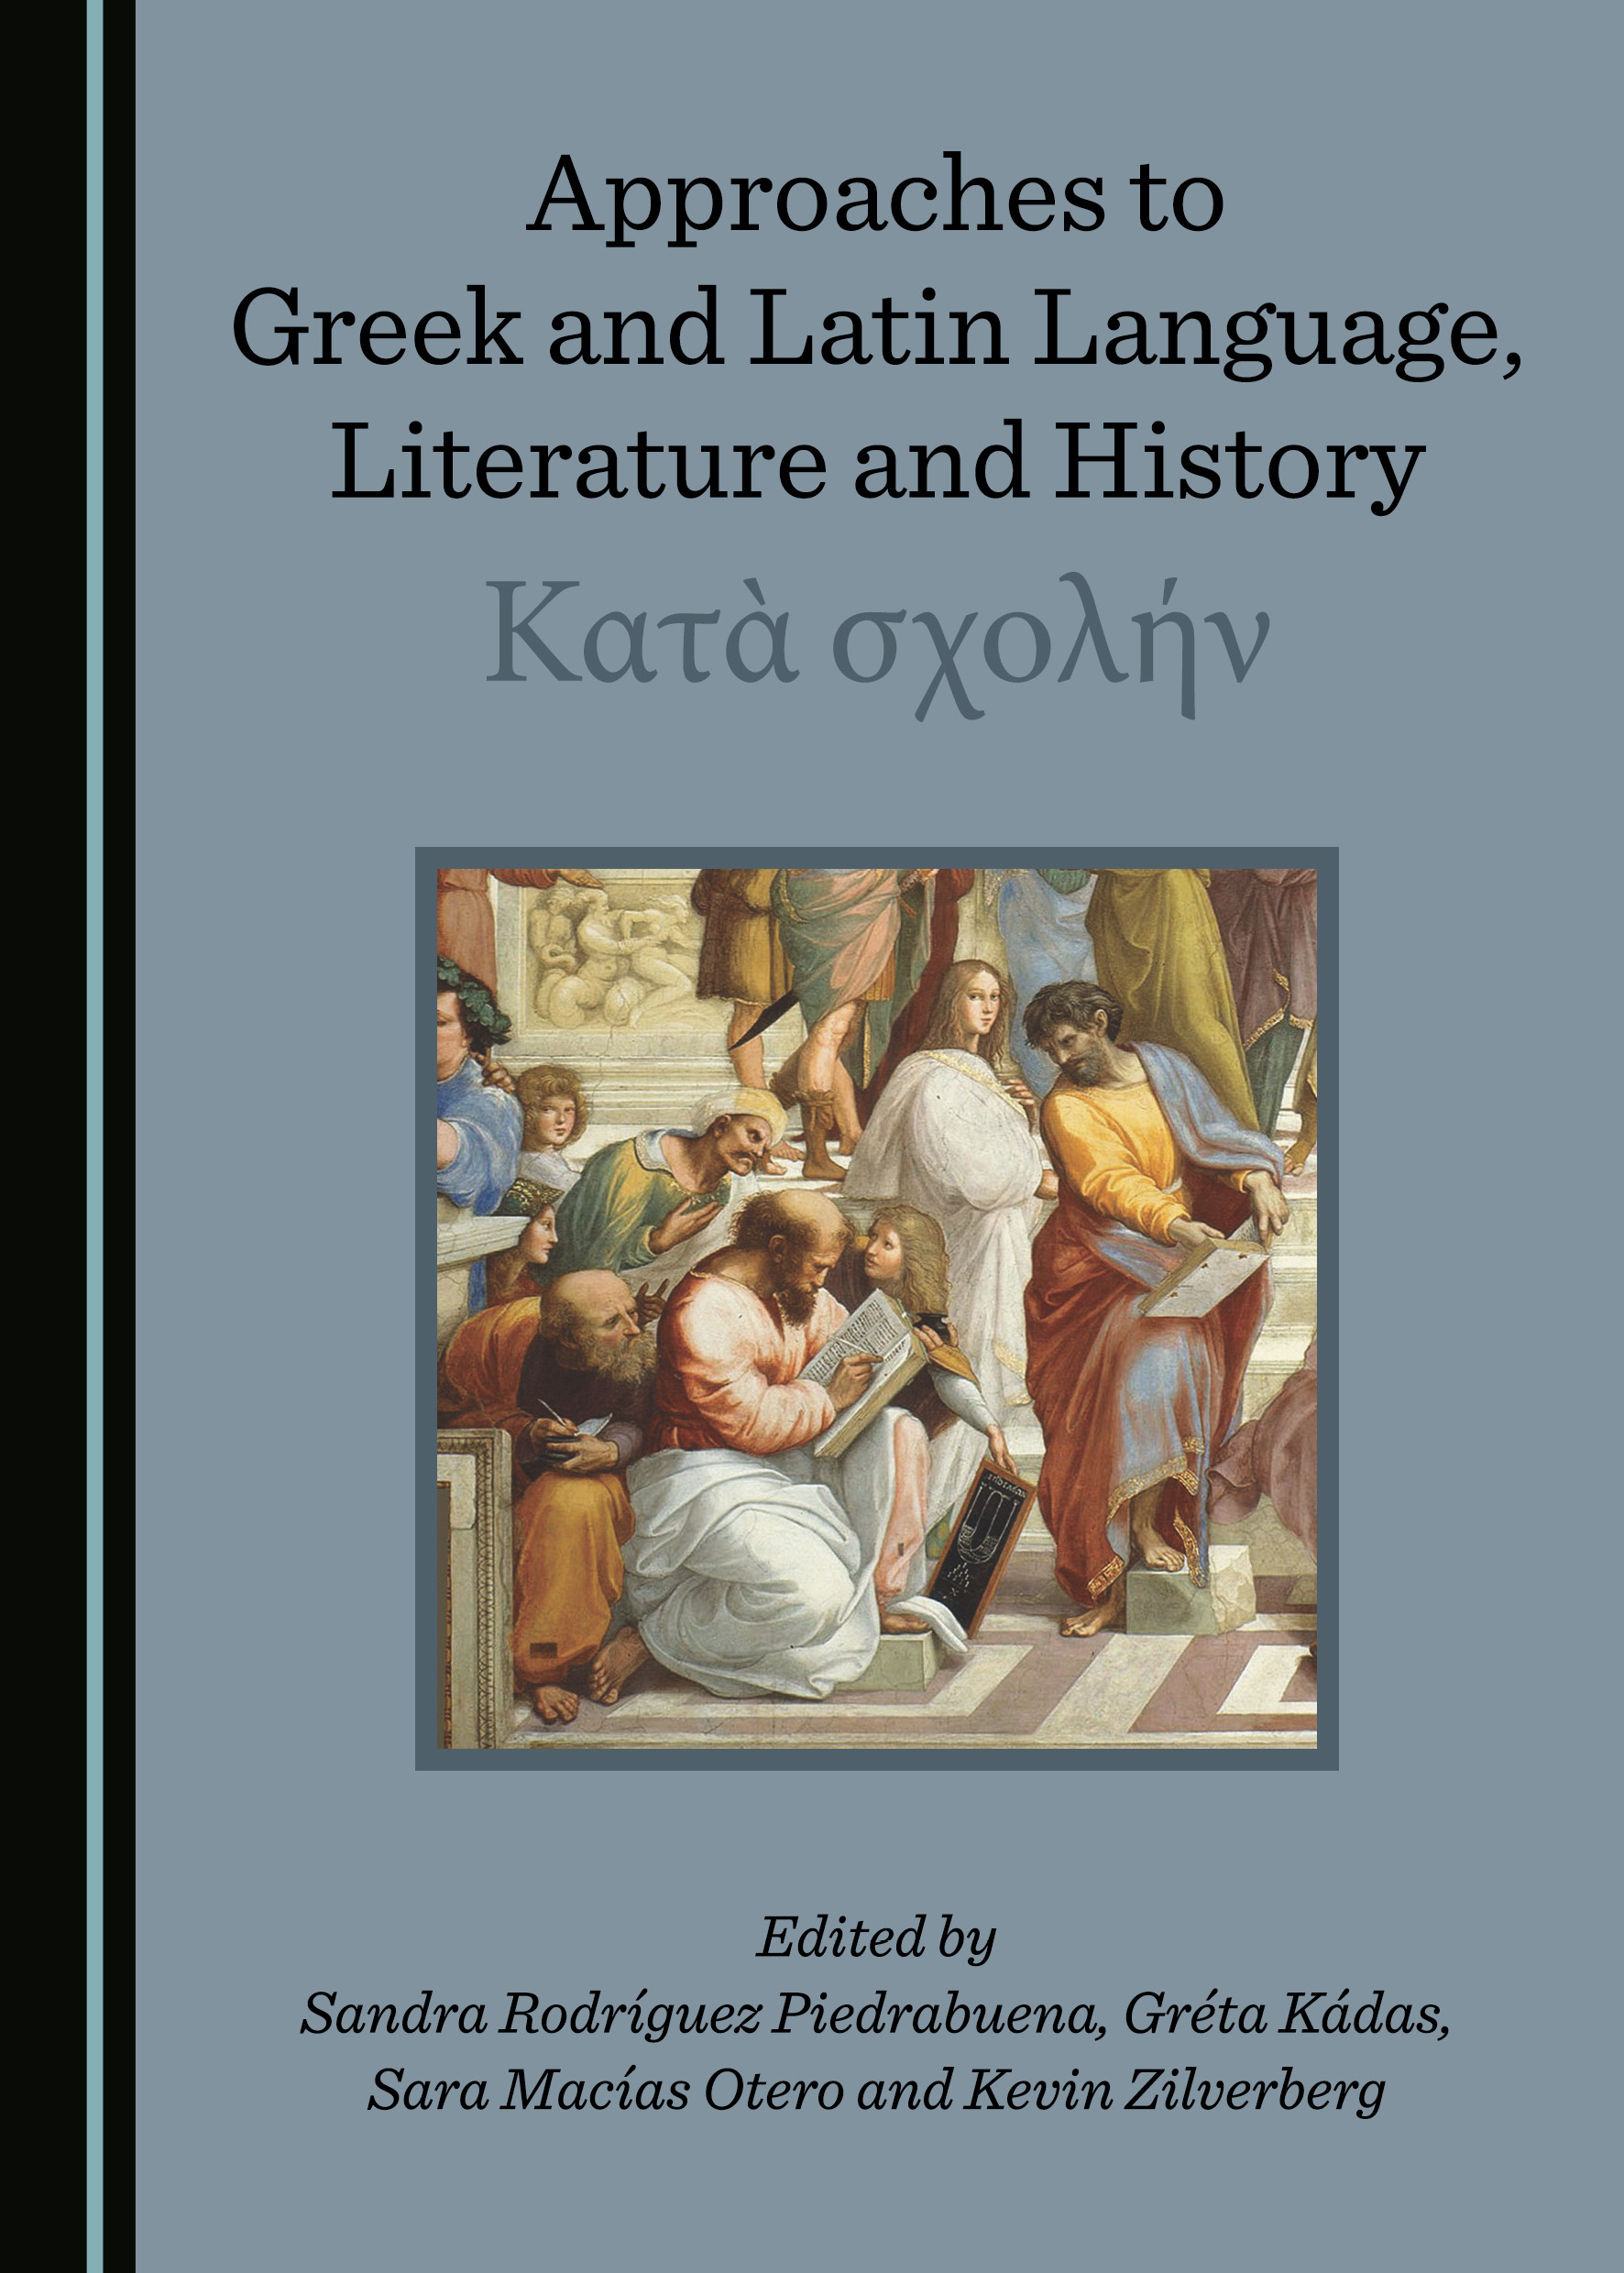 Approaches to Greek and Latin Language, Literature and History: Κατὰ σχολήν